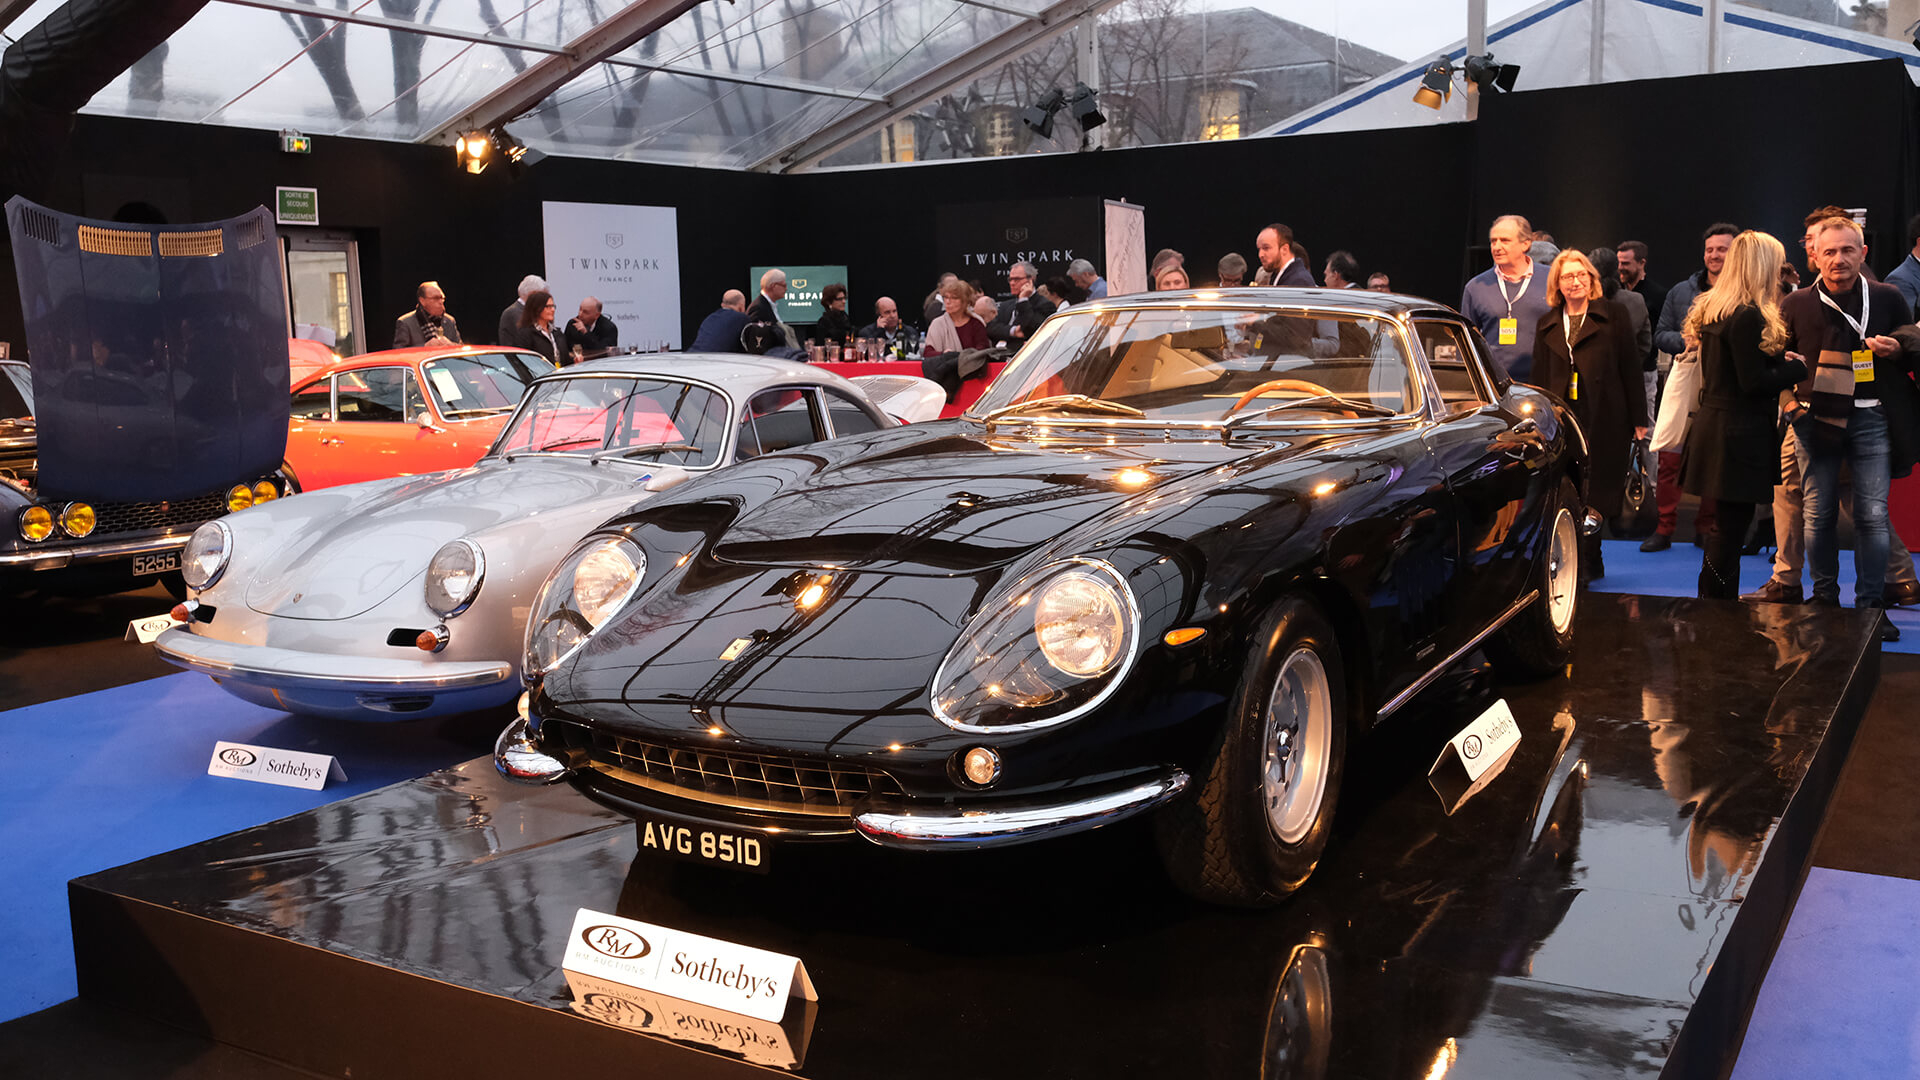 Post-sale deals boost RM's 2019 Paris sale to €30m+